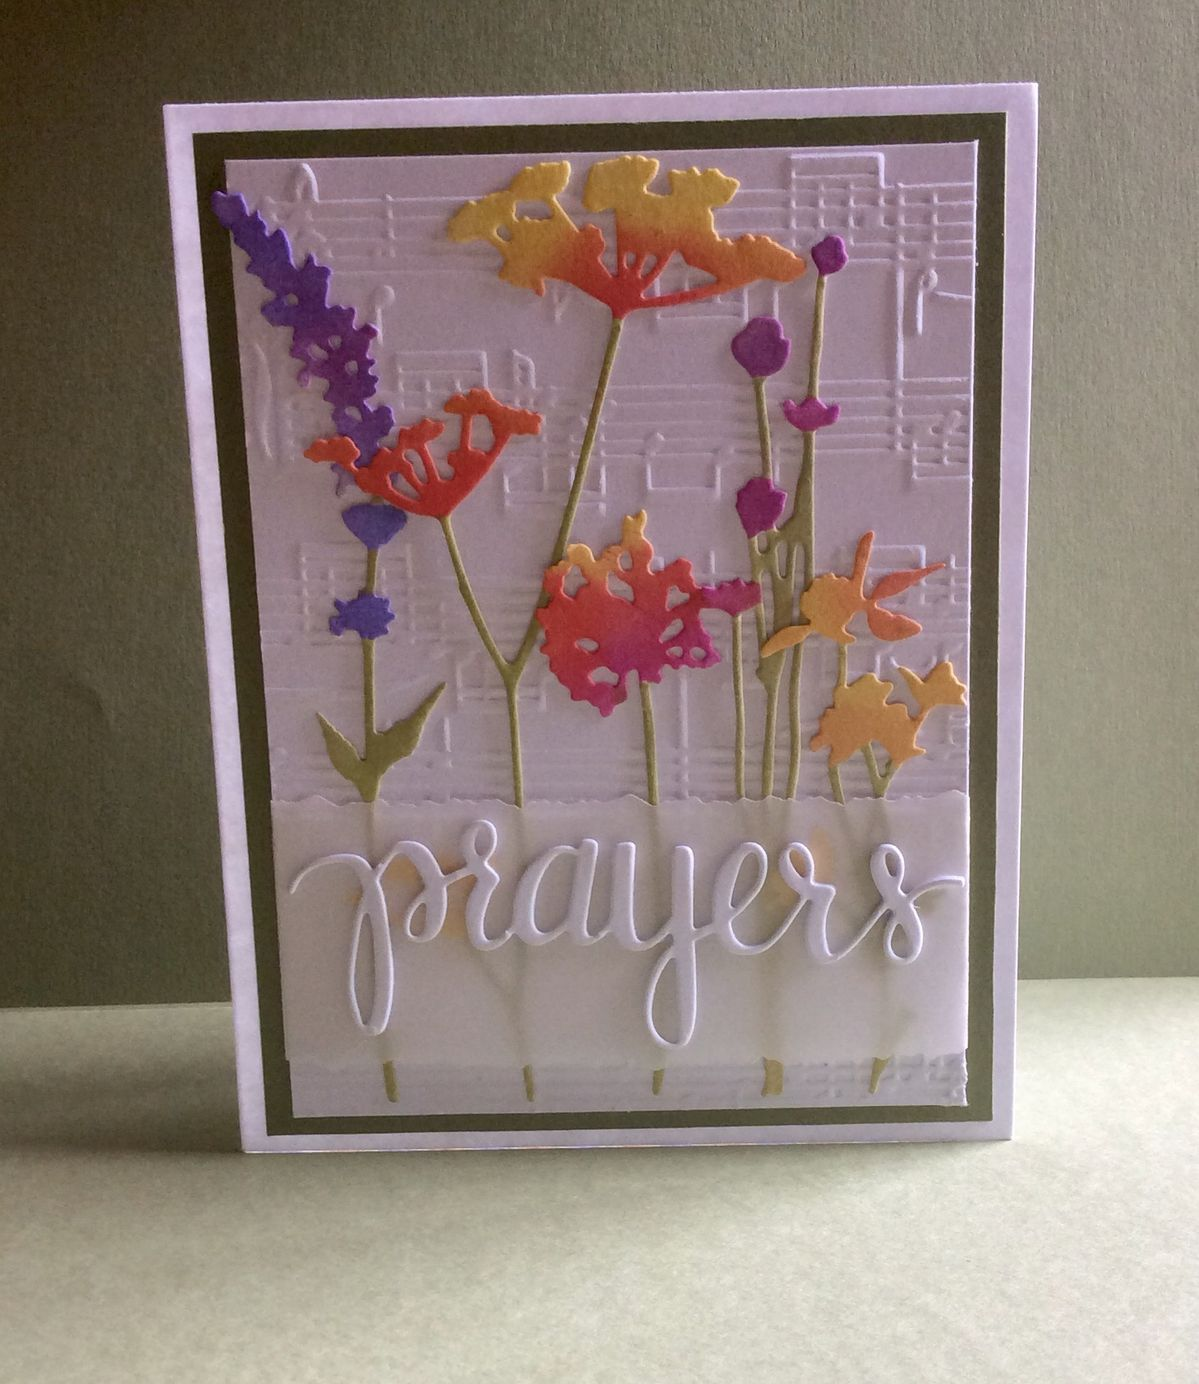 Pin by janet lewis on cards to make pinterest cards sympathy